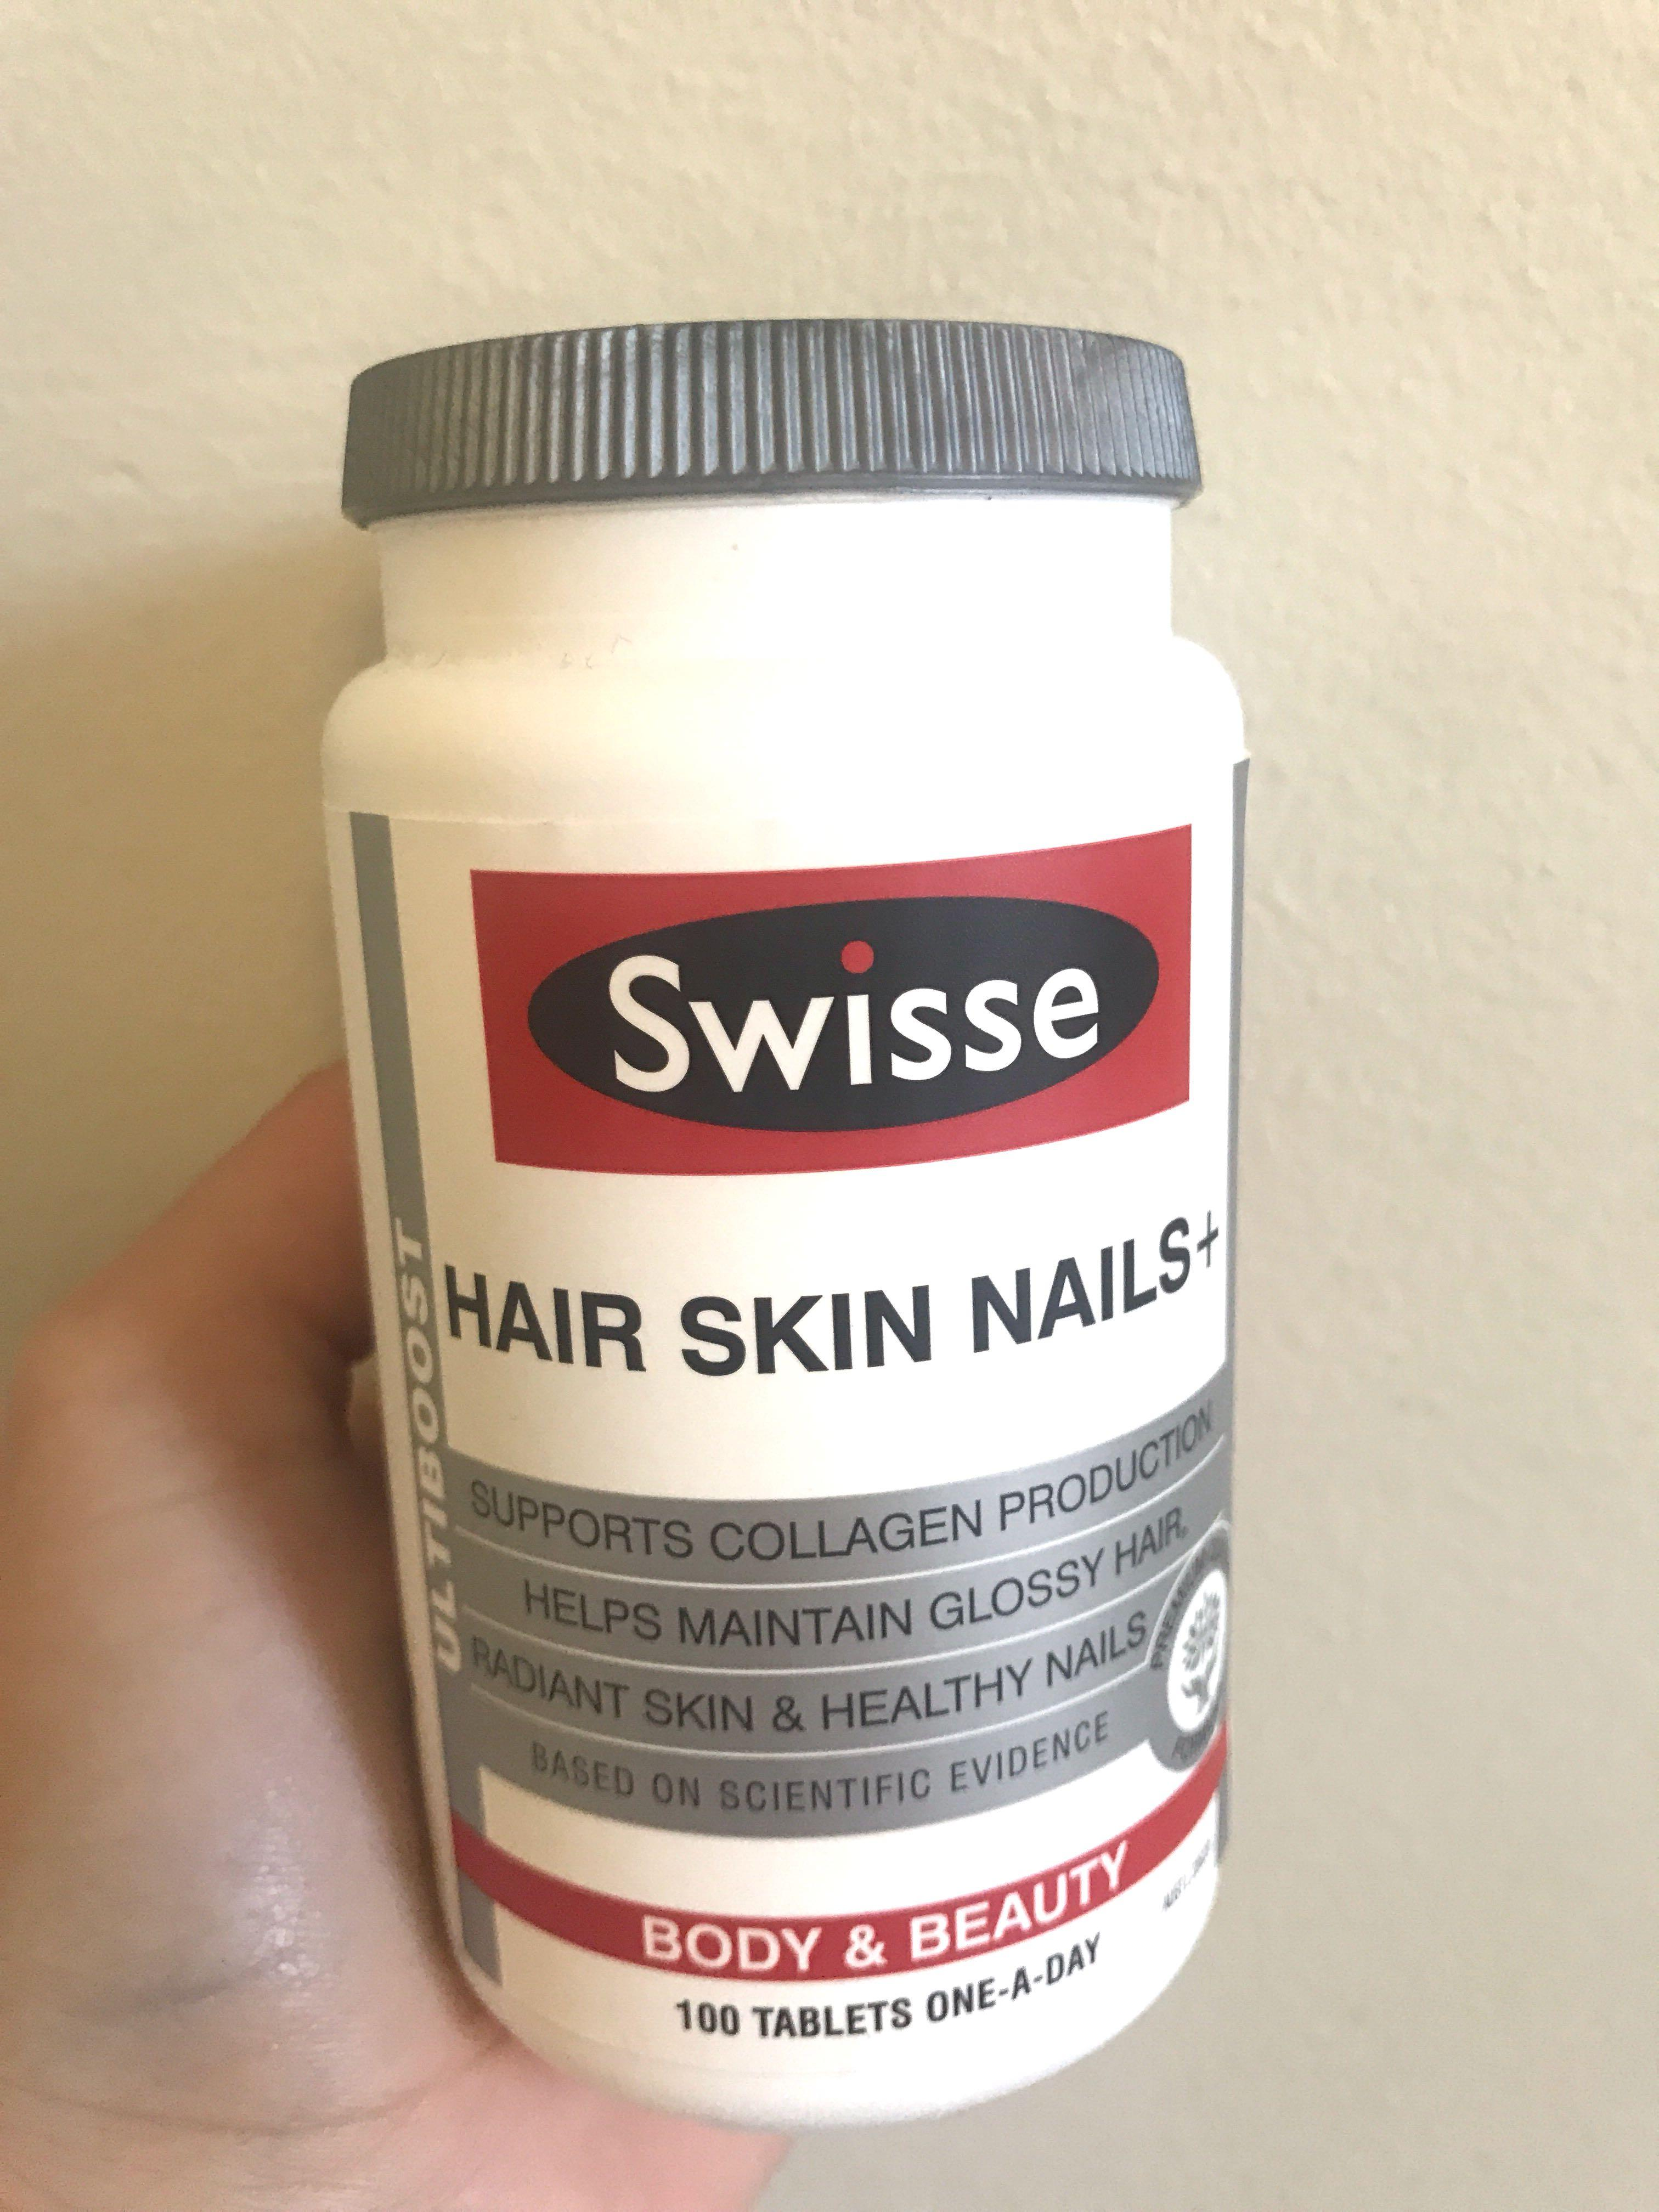 Collagen for hair skin nails